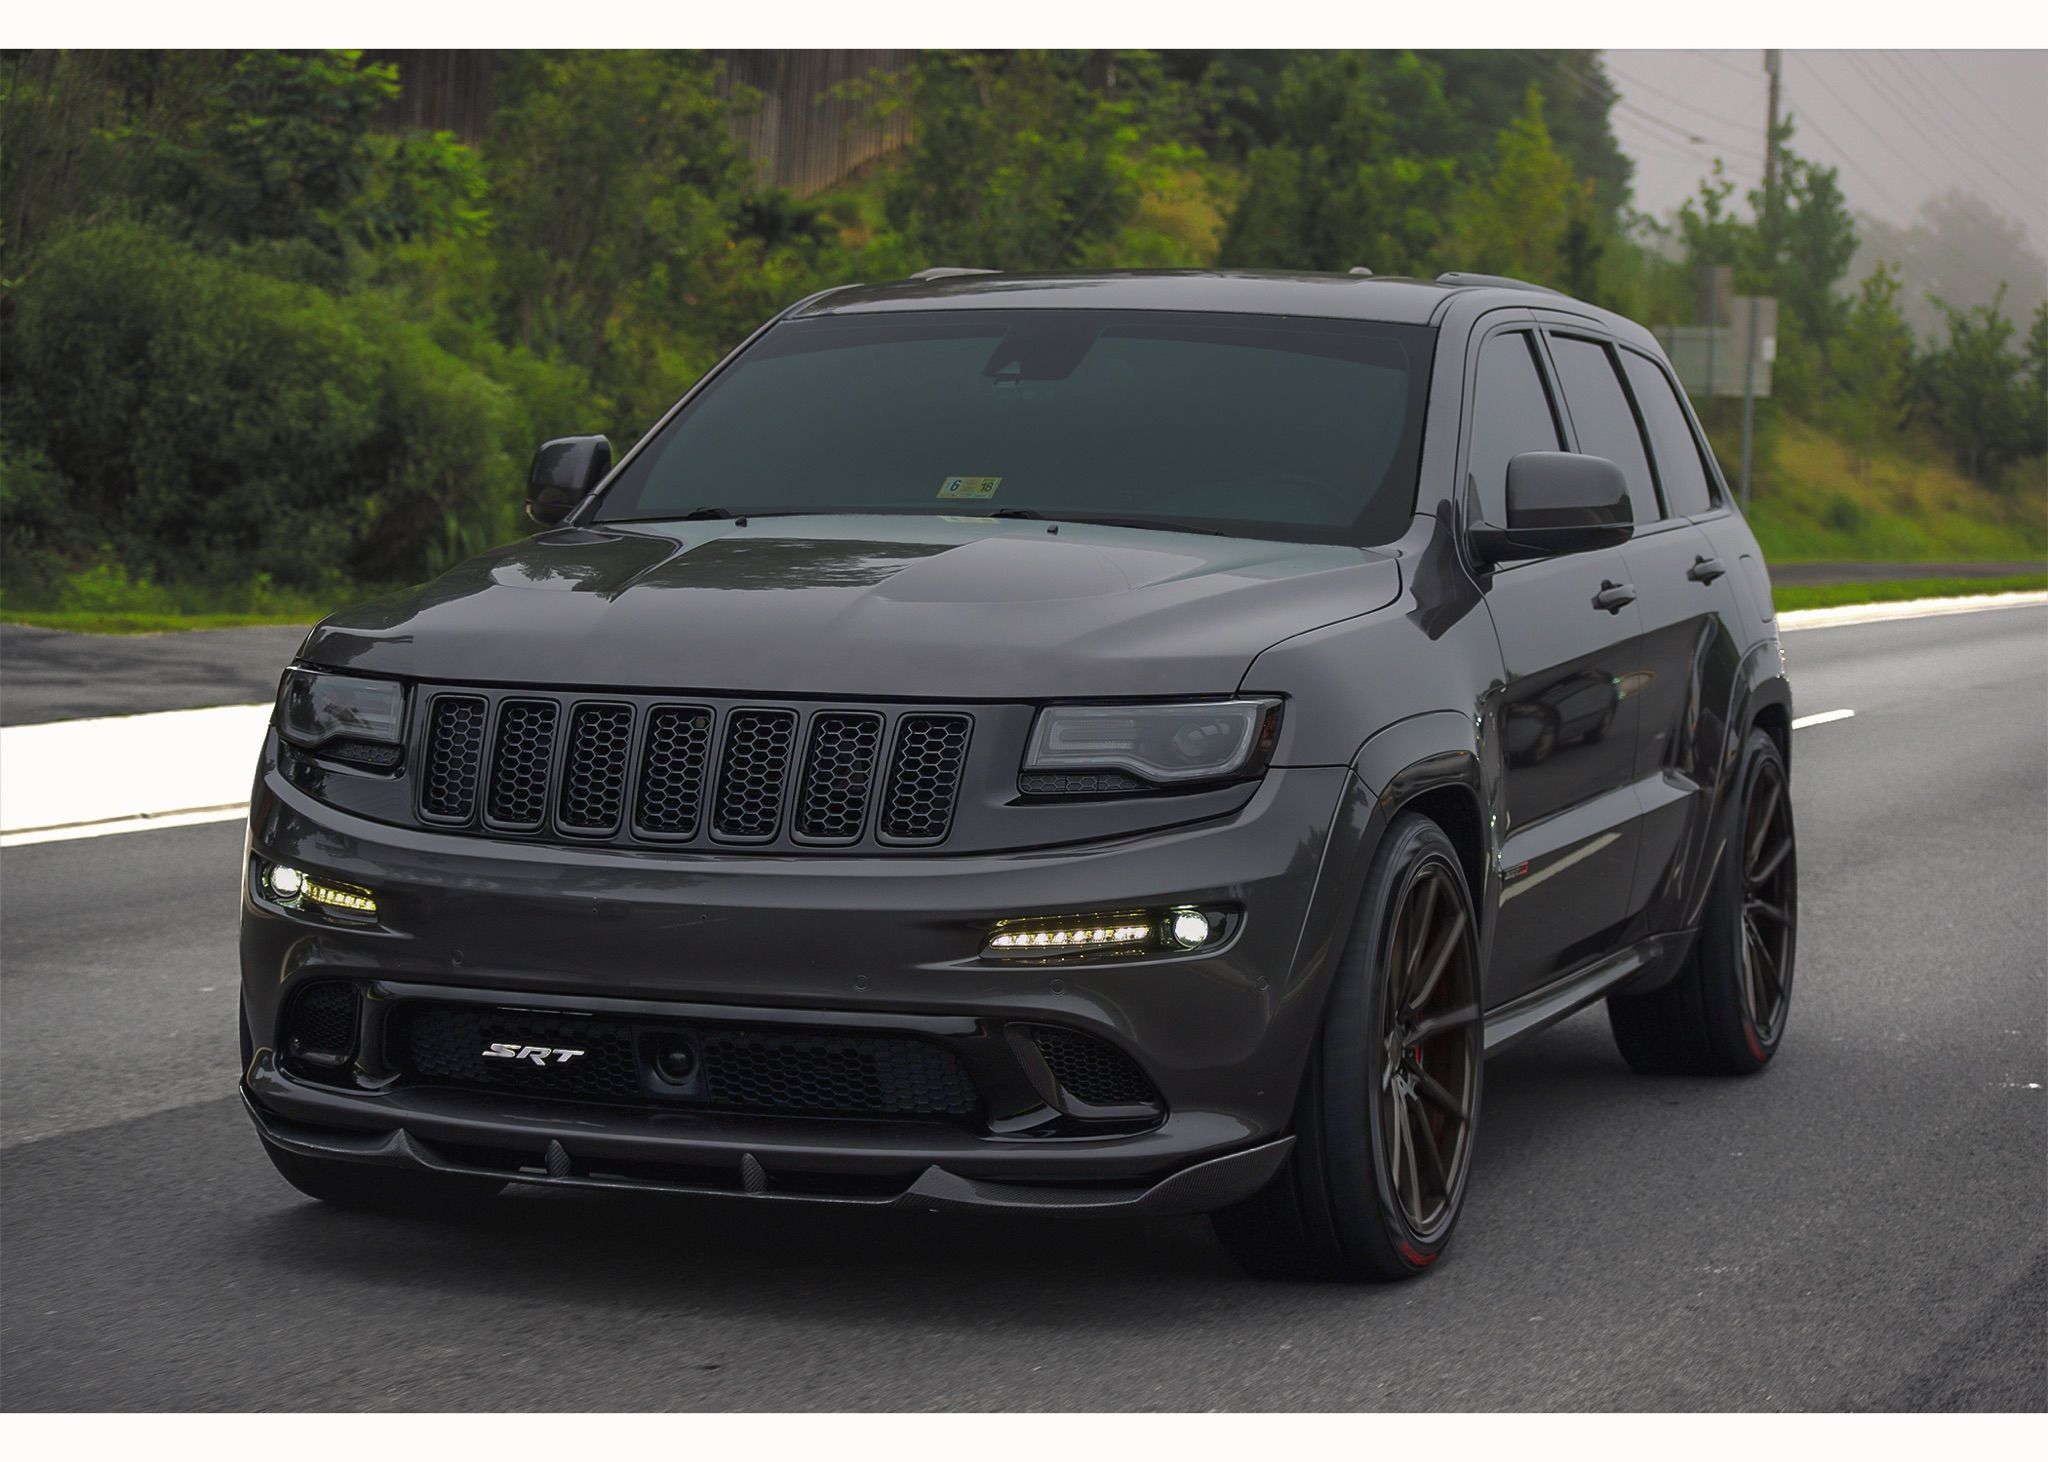 Pin By Katie Keller On Jeep Grand Cherokee Srt Trackhawk Jeep Grand Cherokee Srt Jeep Srt8 Jeep Grand Cherokee